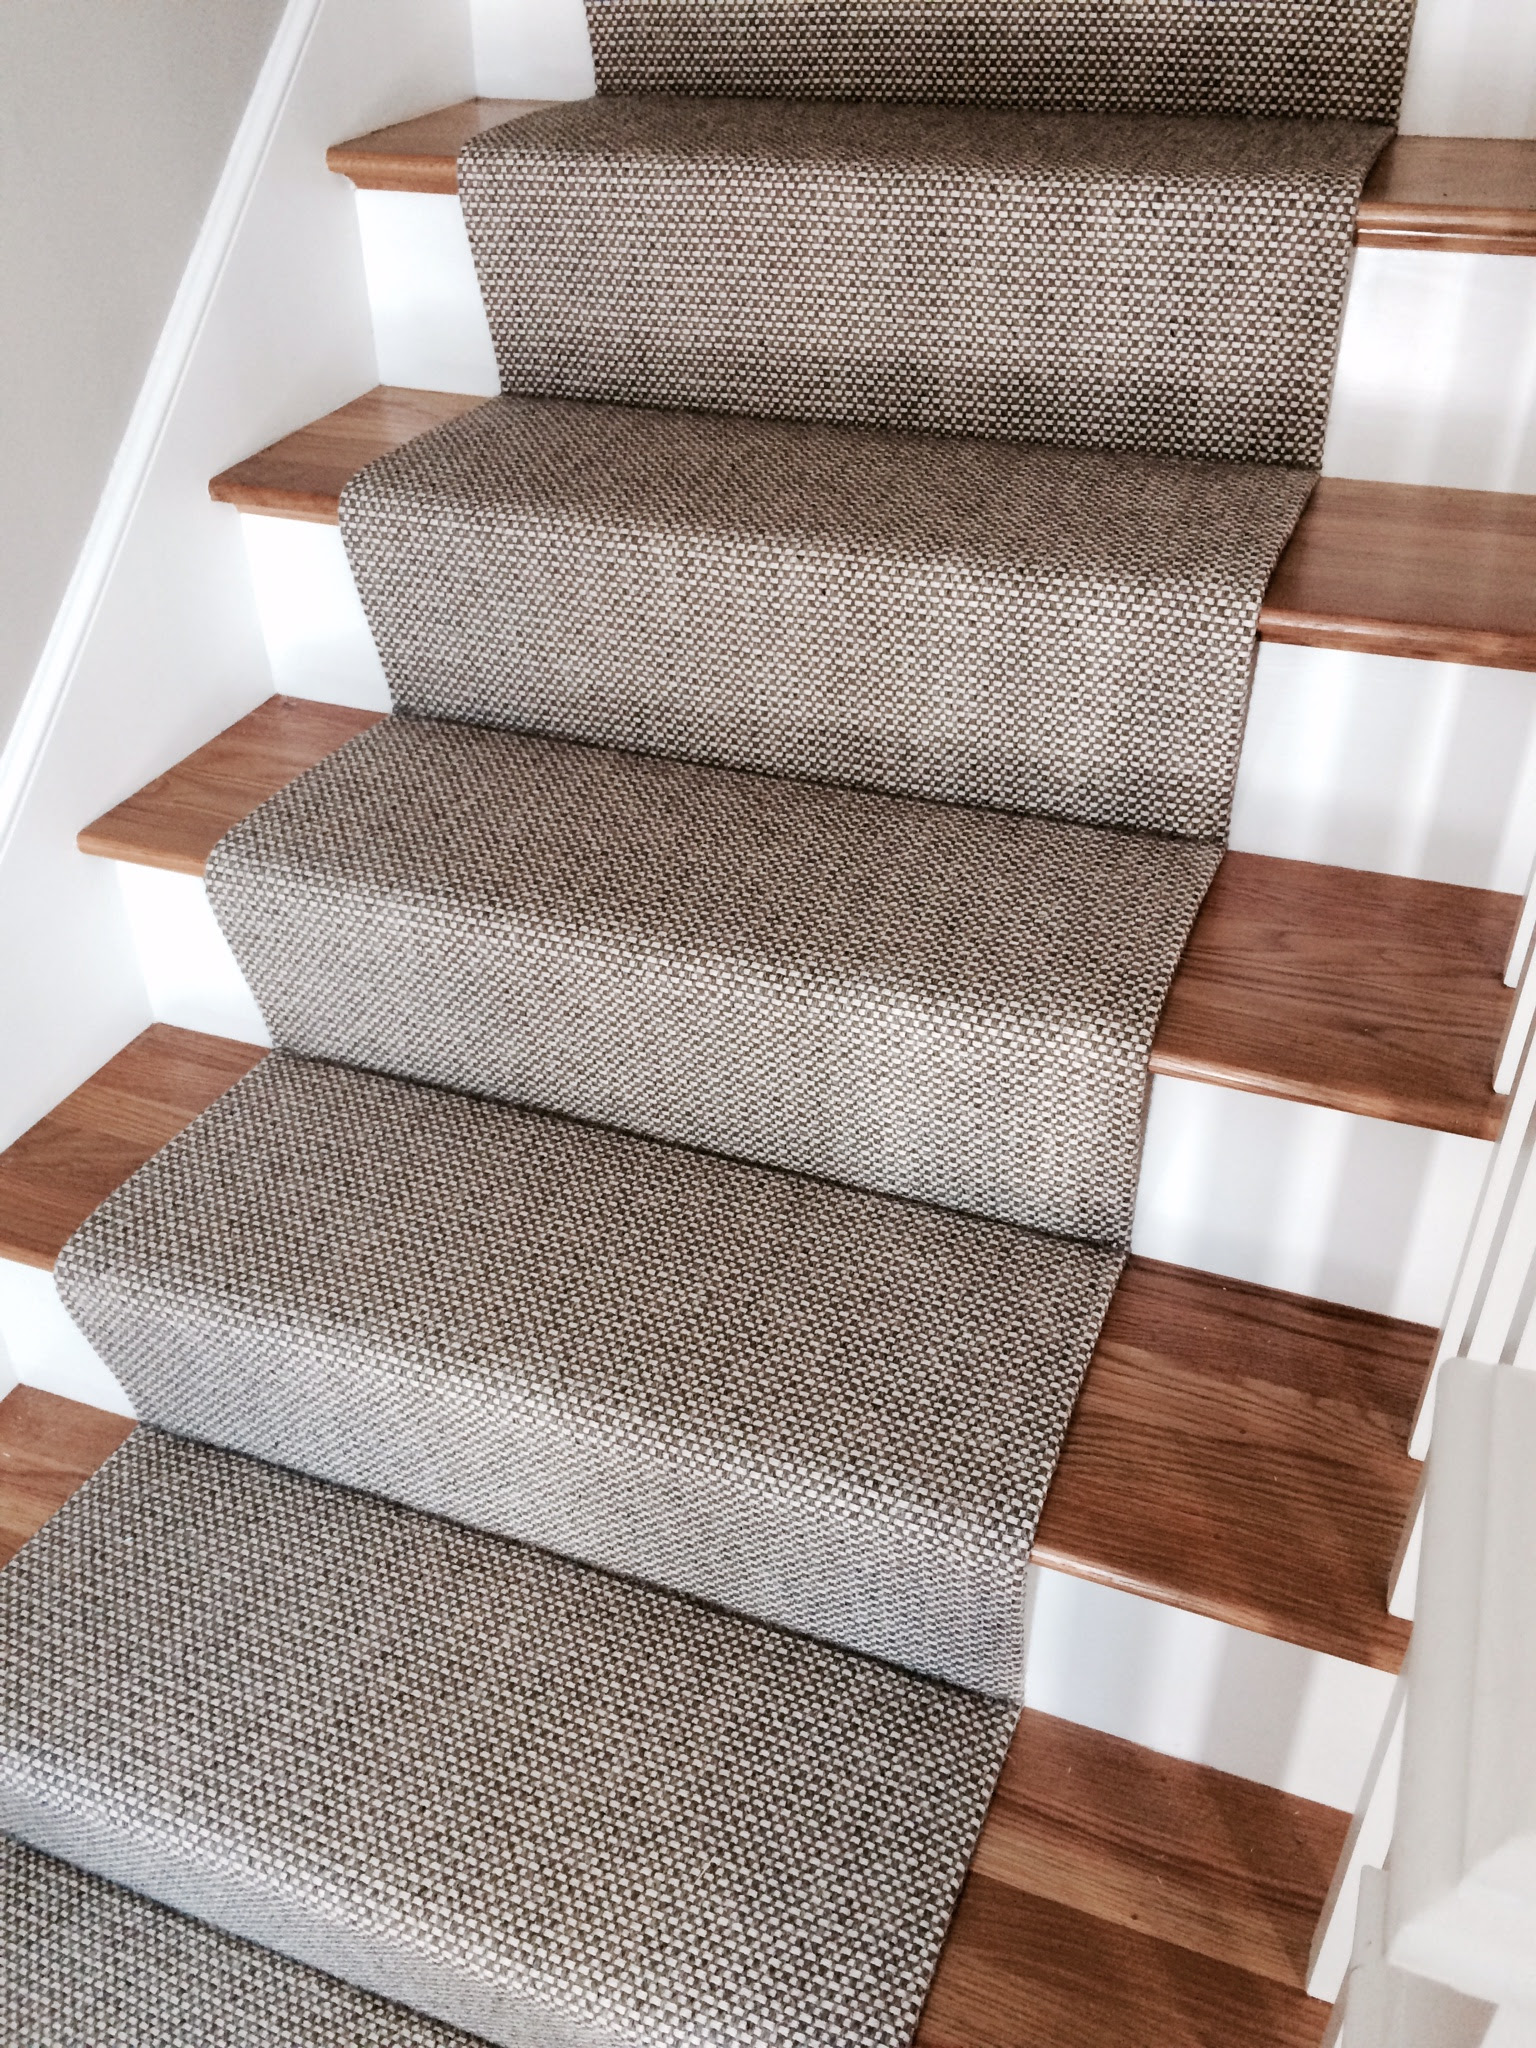 Indoor Outdoor Carpet Runners For Stairs Outdoor Designs